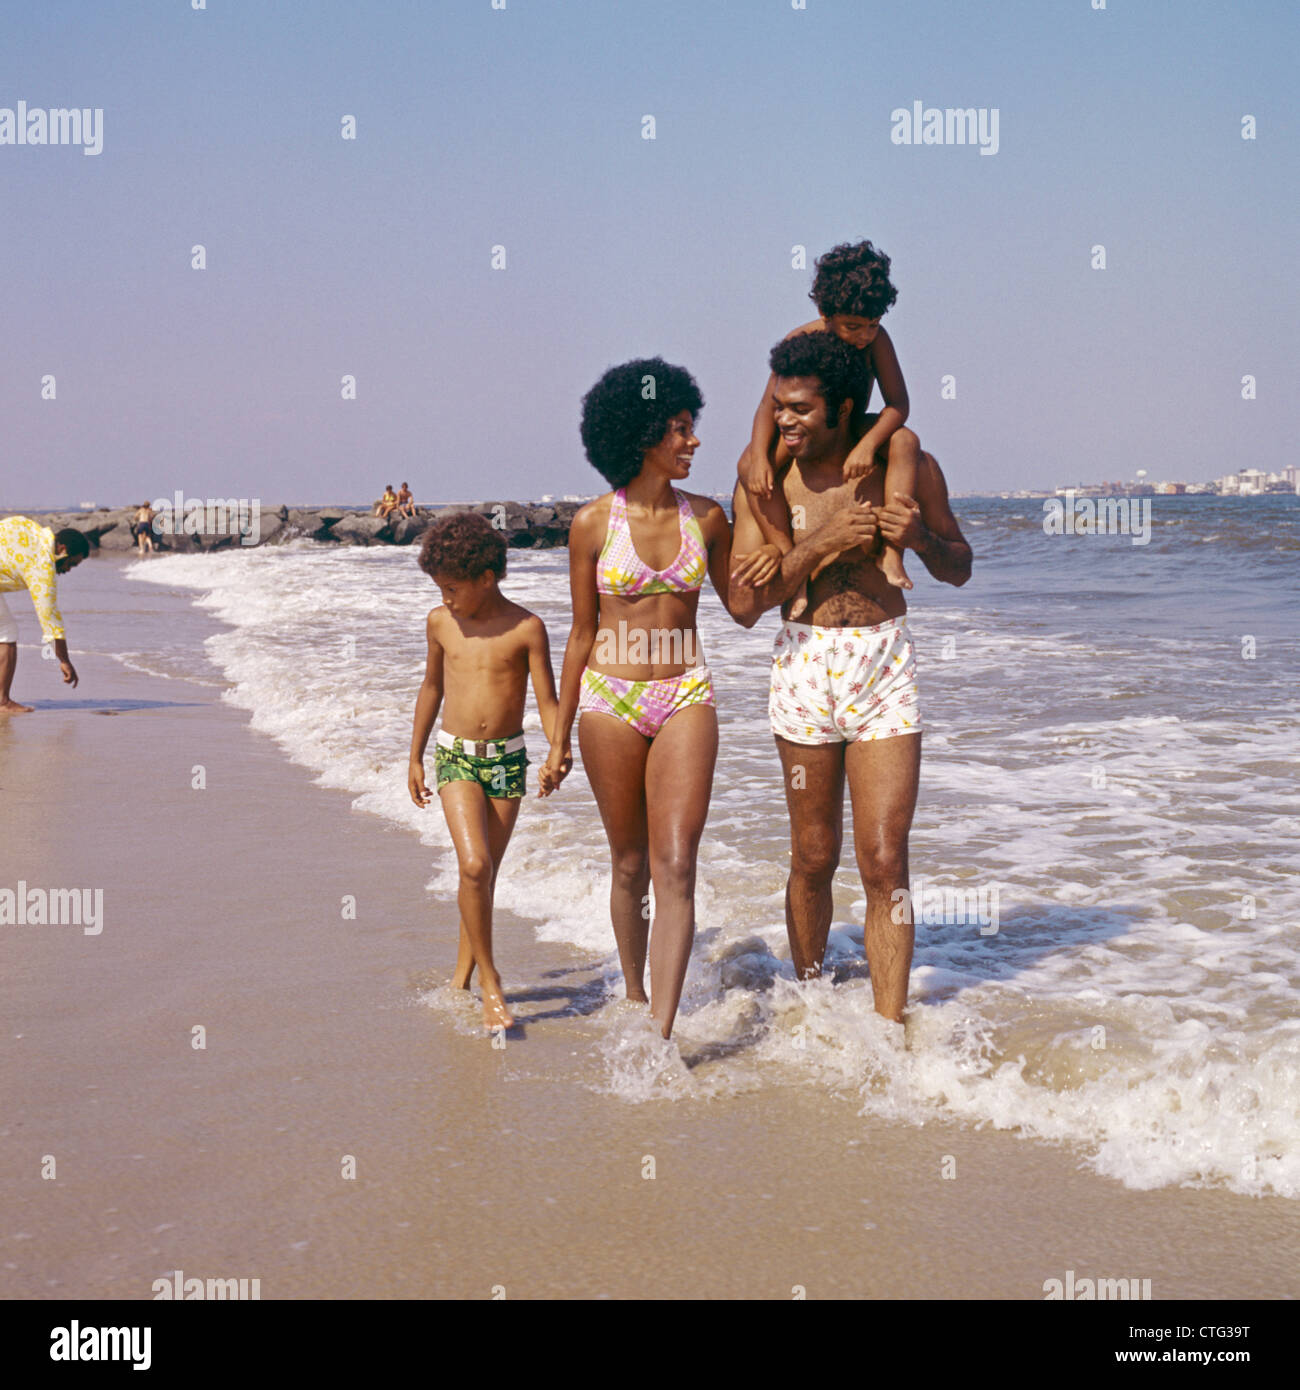 1970s AFRICAN-AMERICAN FAMILY OF FOUR WALKING ON BEACH - Stock Image